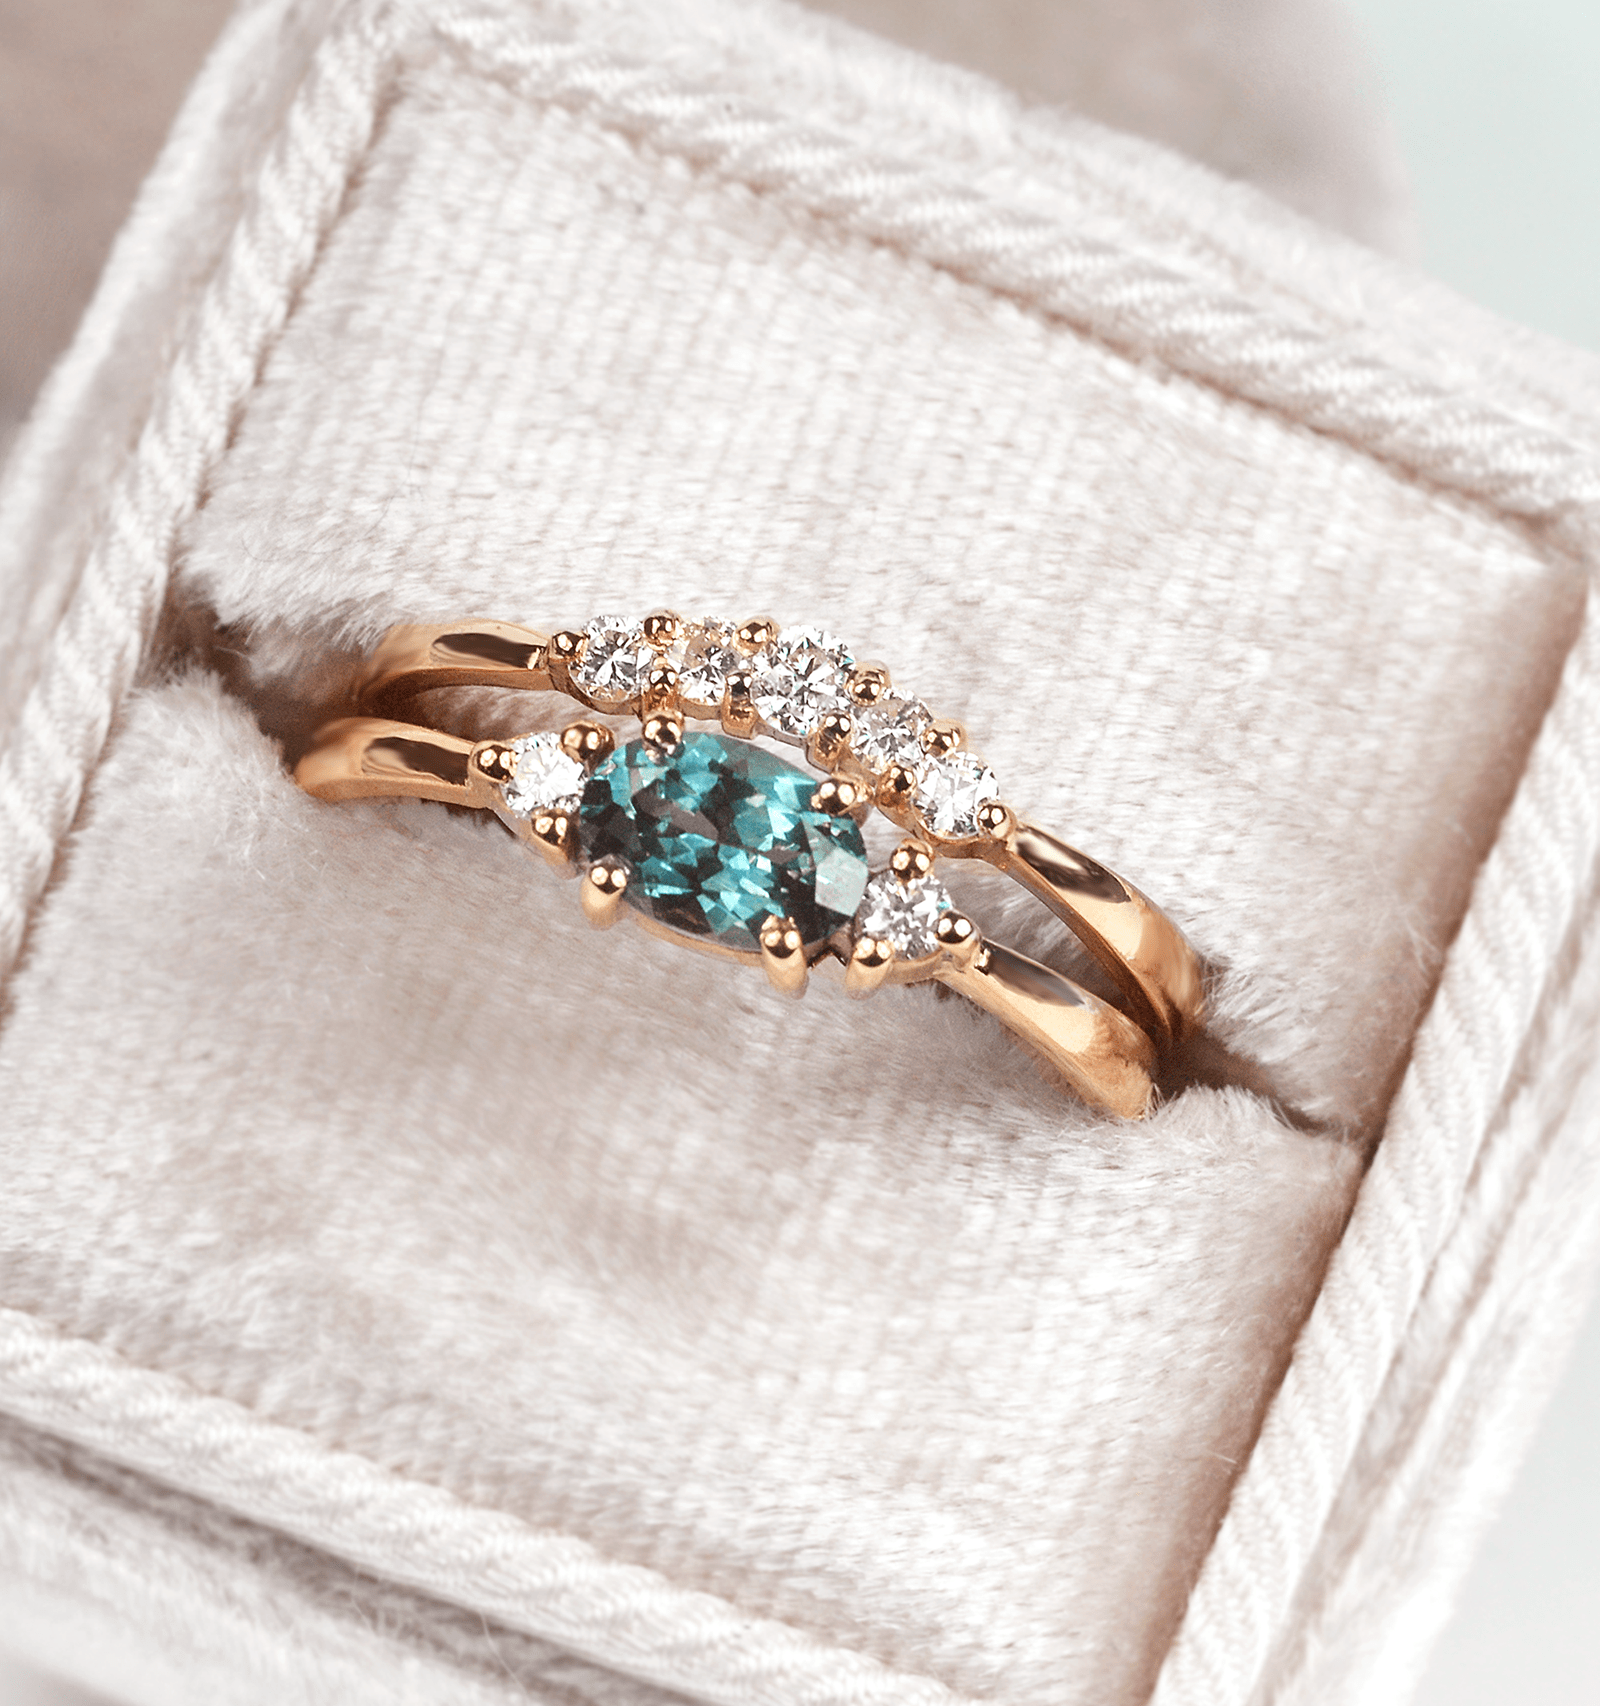 Teal sapphire ring, teal sapphire engagement ring